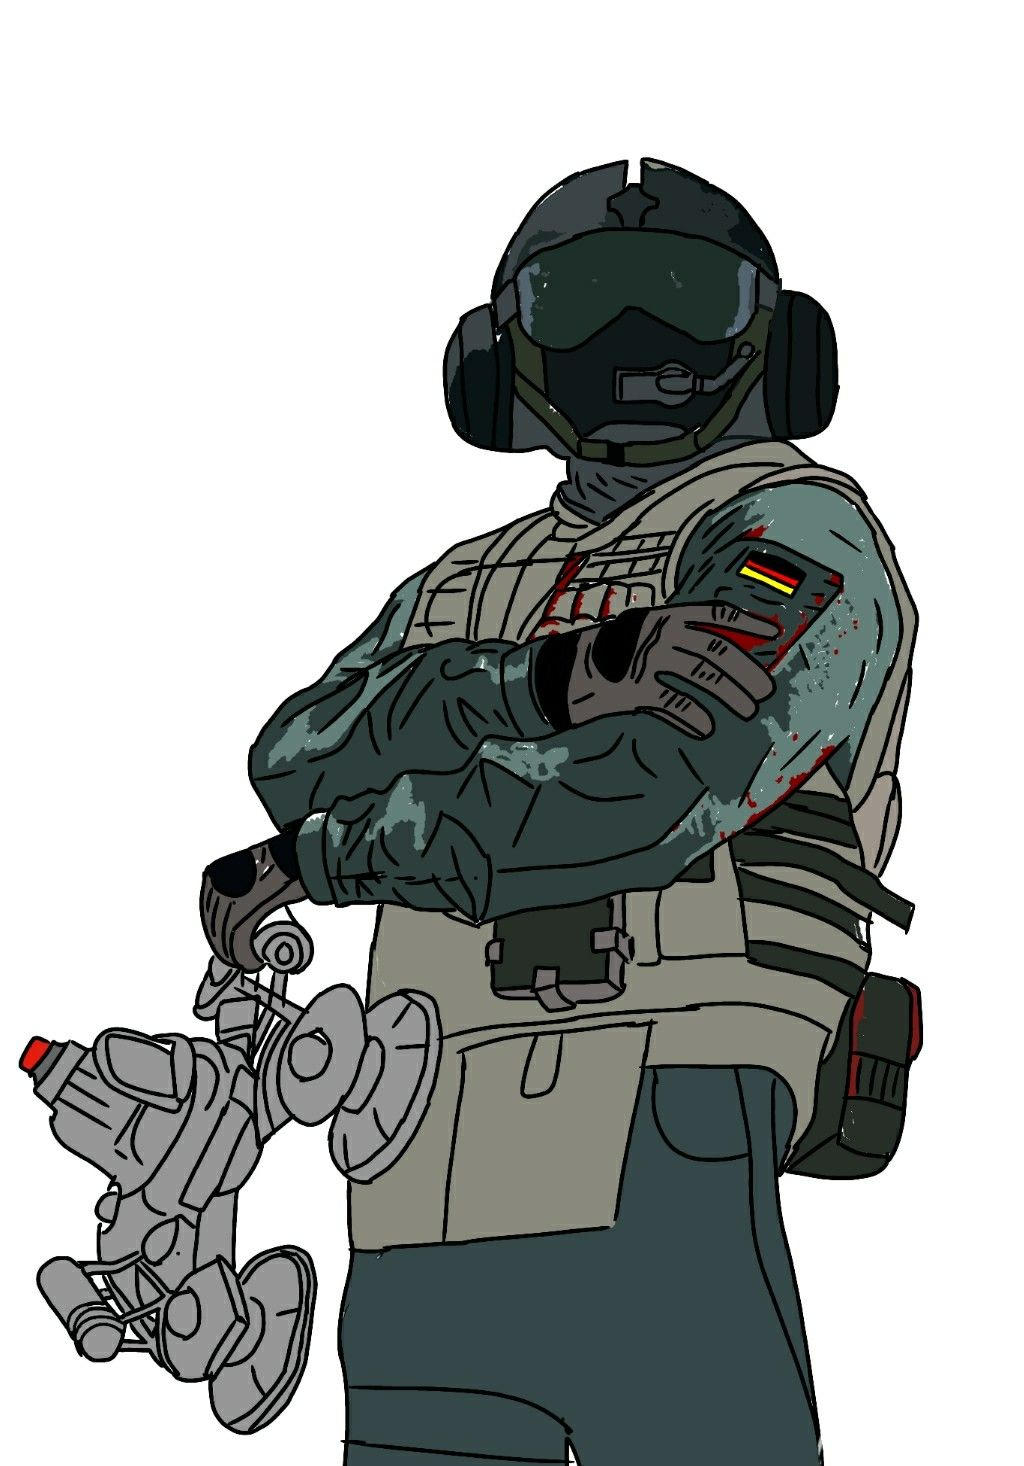 Rainbow Six Siege Jager Gsg9 Polizei With Images Rainbow Six